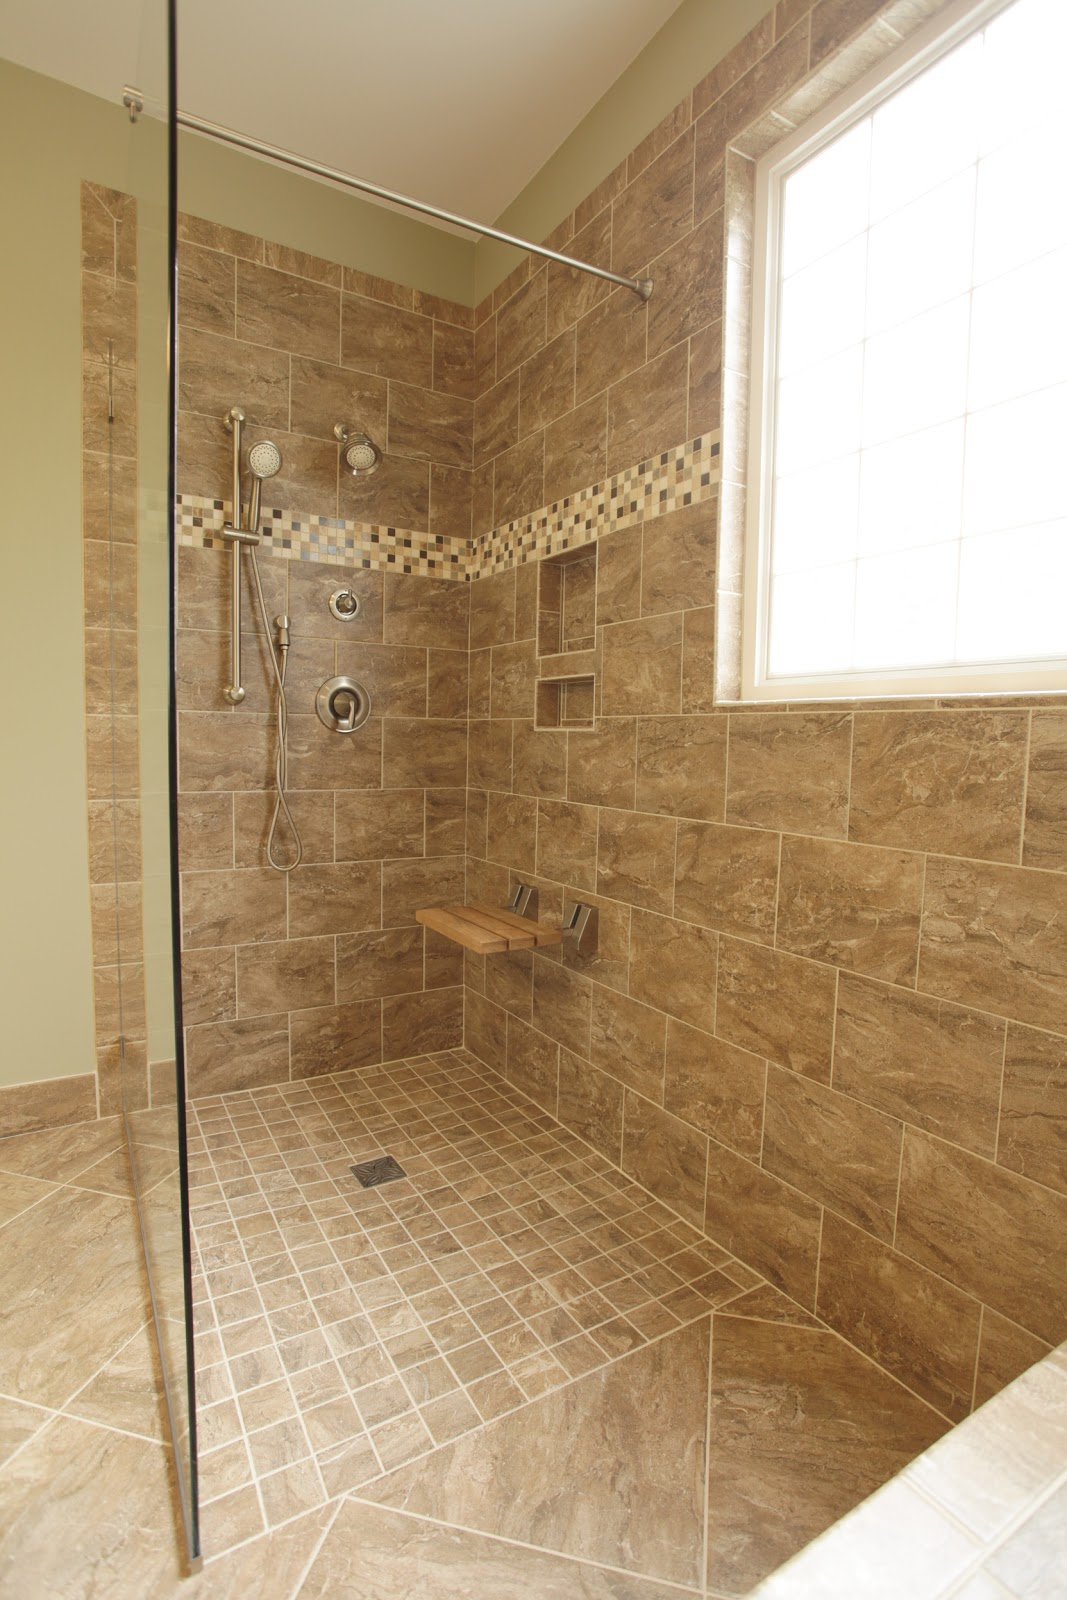 bathroom designs with walk in shower and soaking tub html with Bathroom Designs Shower Bath on Bathroom Paint Color Trends For 2014 also 0dfa7c860bad2f0b also Wailea beach villas golden mandarin further 8987ca8bf6f2d200 moreover 627f42d1a9efd6cb.